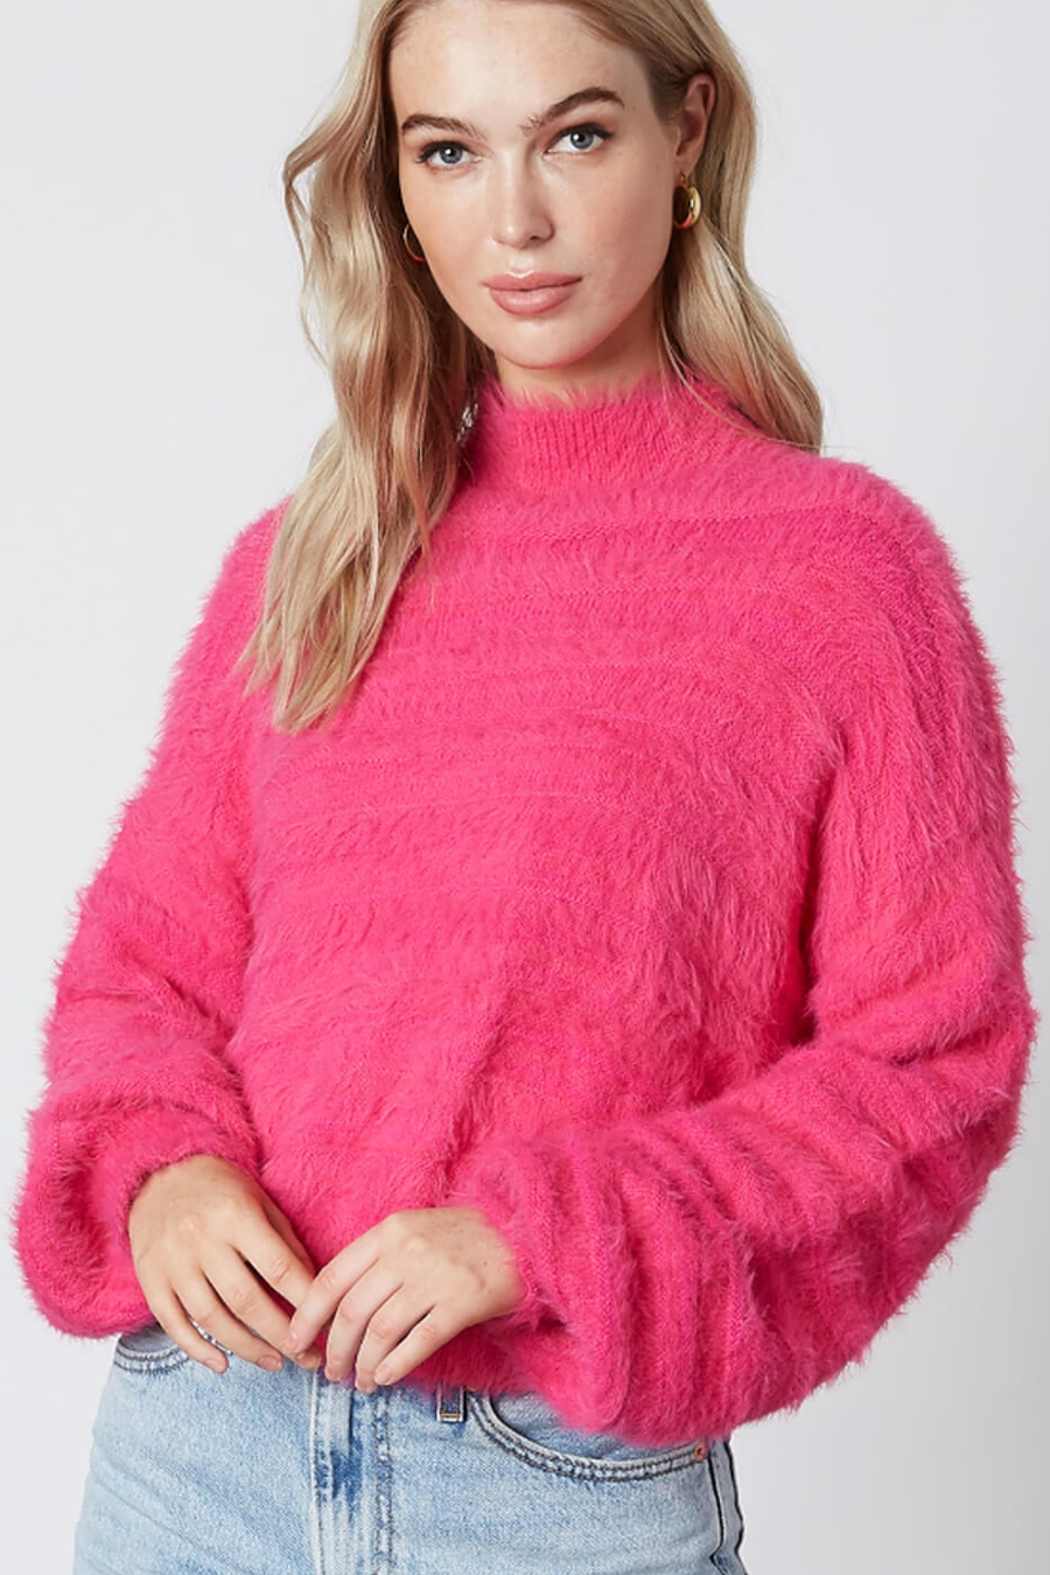 Cotton Candy  Fuzzy Mock Neck Sweater - Main Image